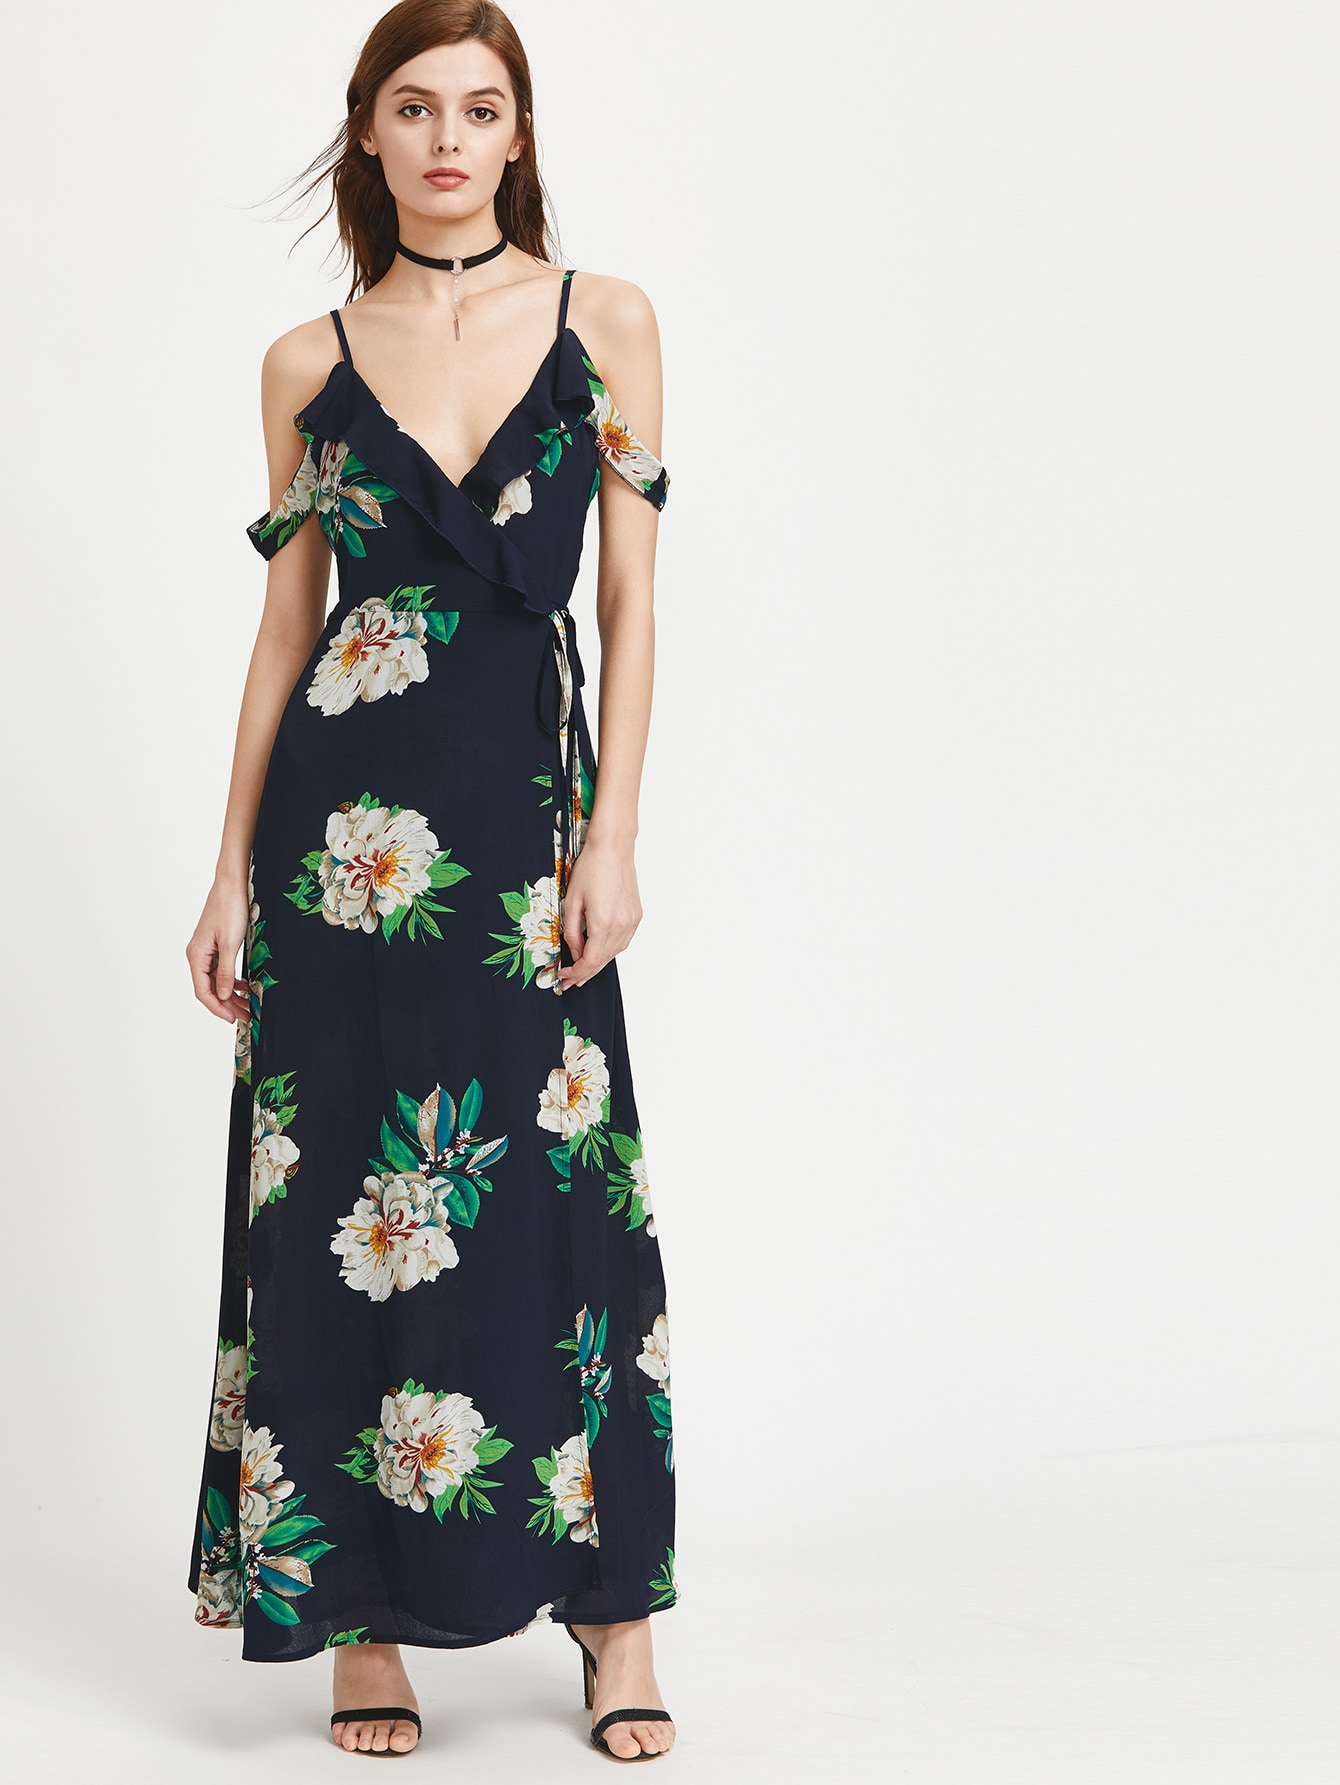 Cold Shoulder Florals Tie Back Frill Dress allover florals bow tie detail frill top with shorts